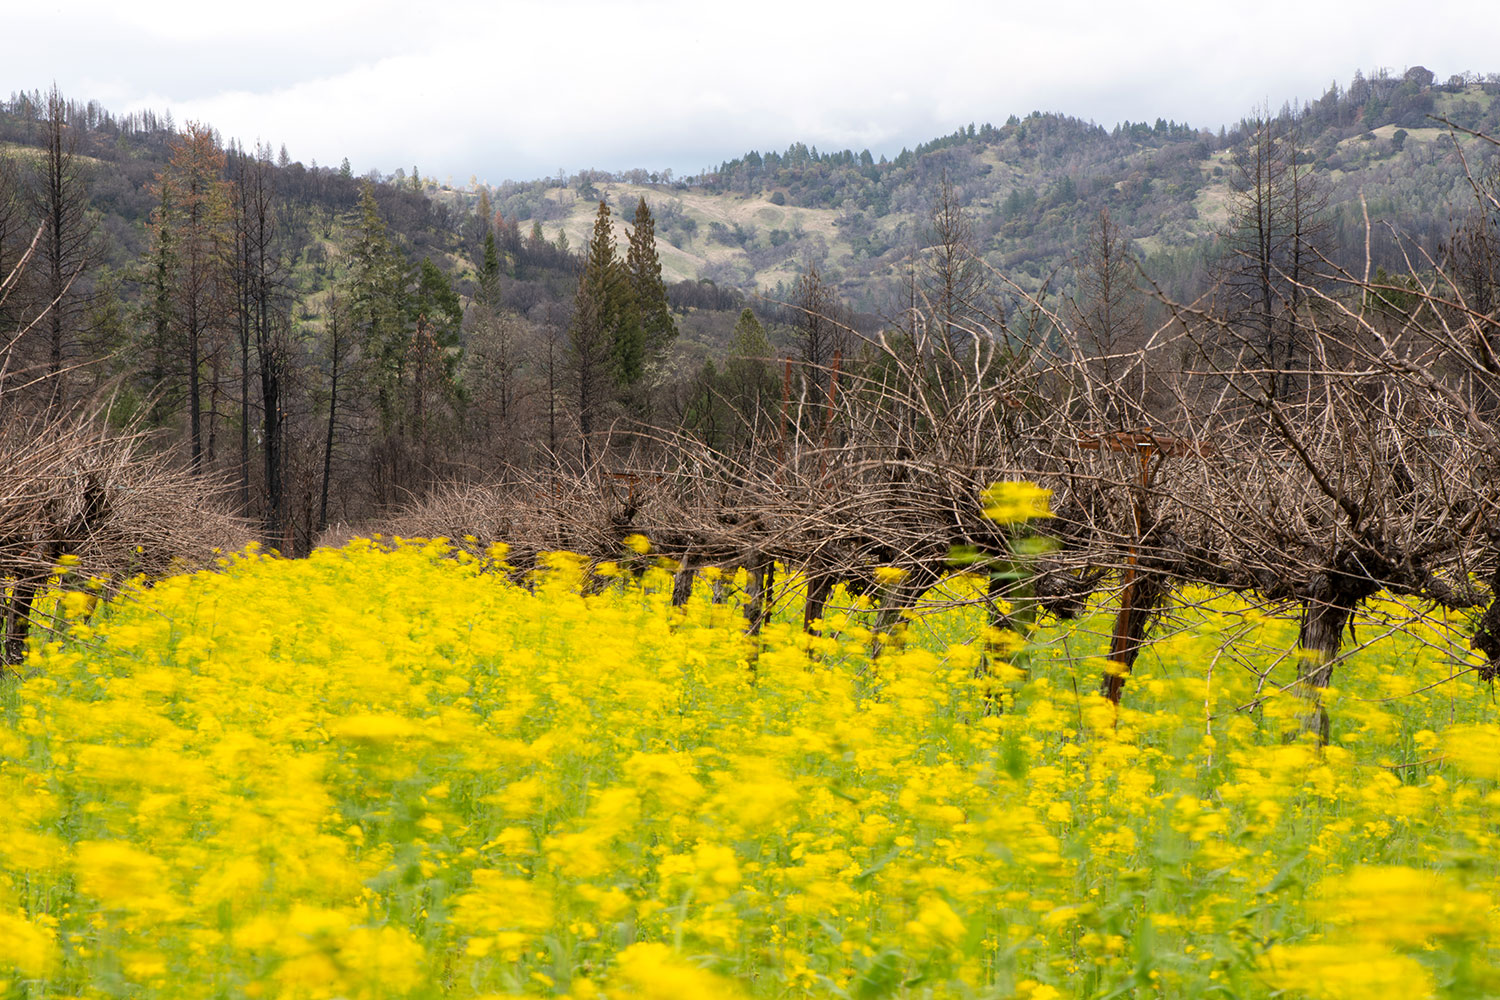 Mustard blowing in the wind in frey organic cabernet vineyard.